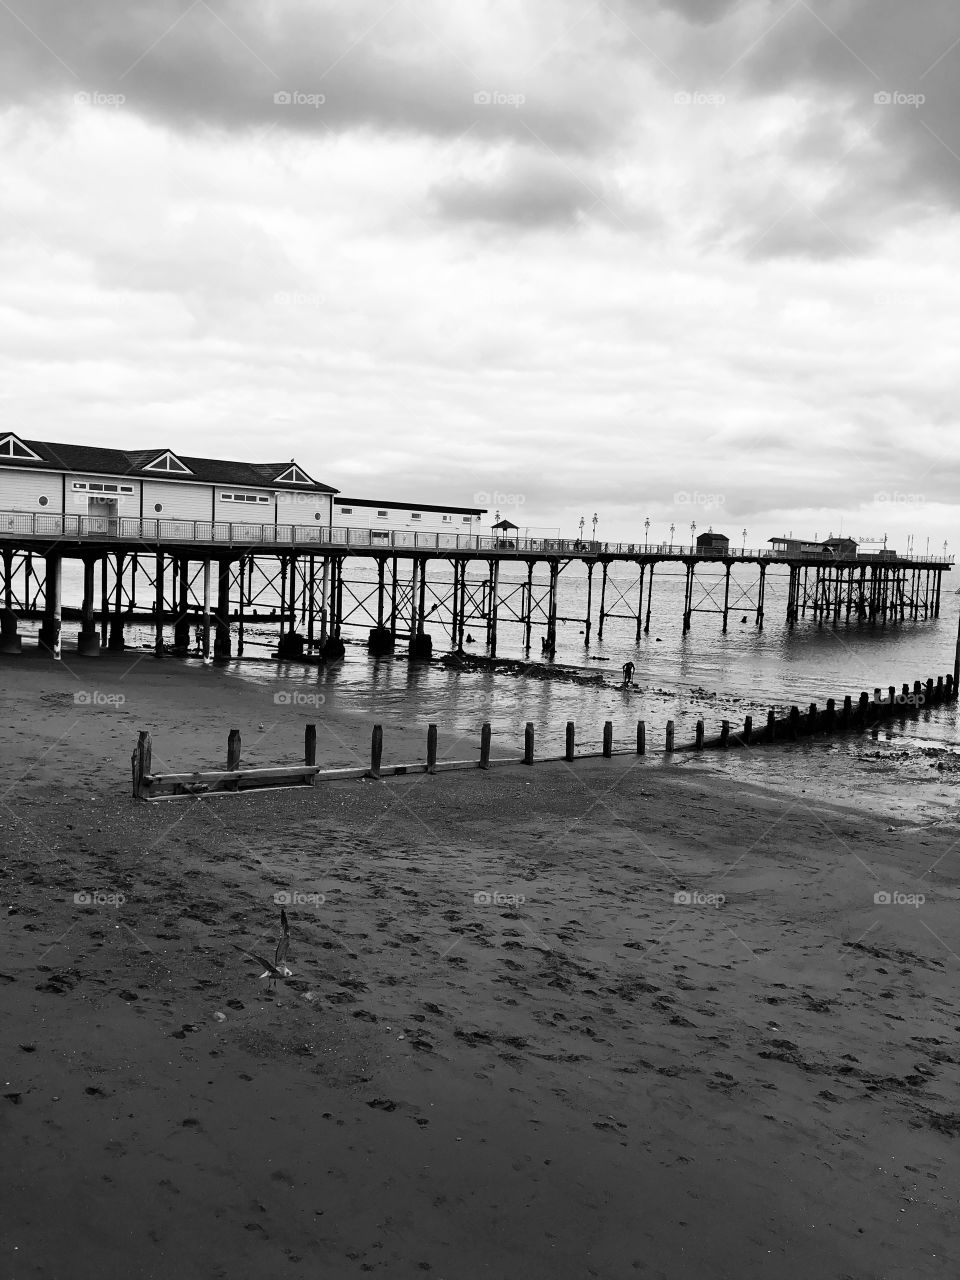 Sadly Teignmouth pier in colour presents as rather old and a little sad, however the same photo in black and white has lots of appeal.